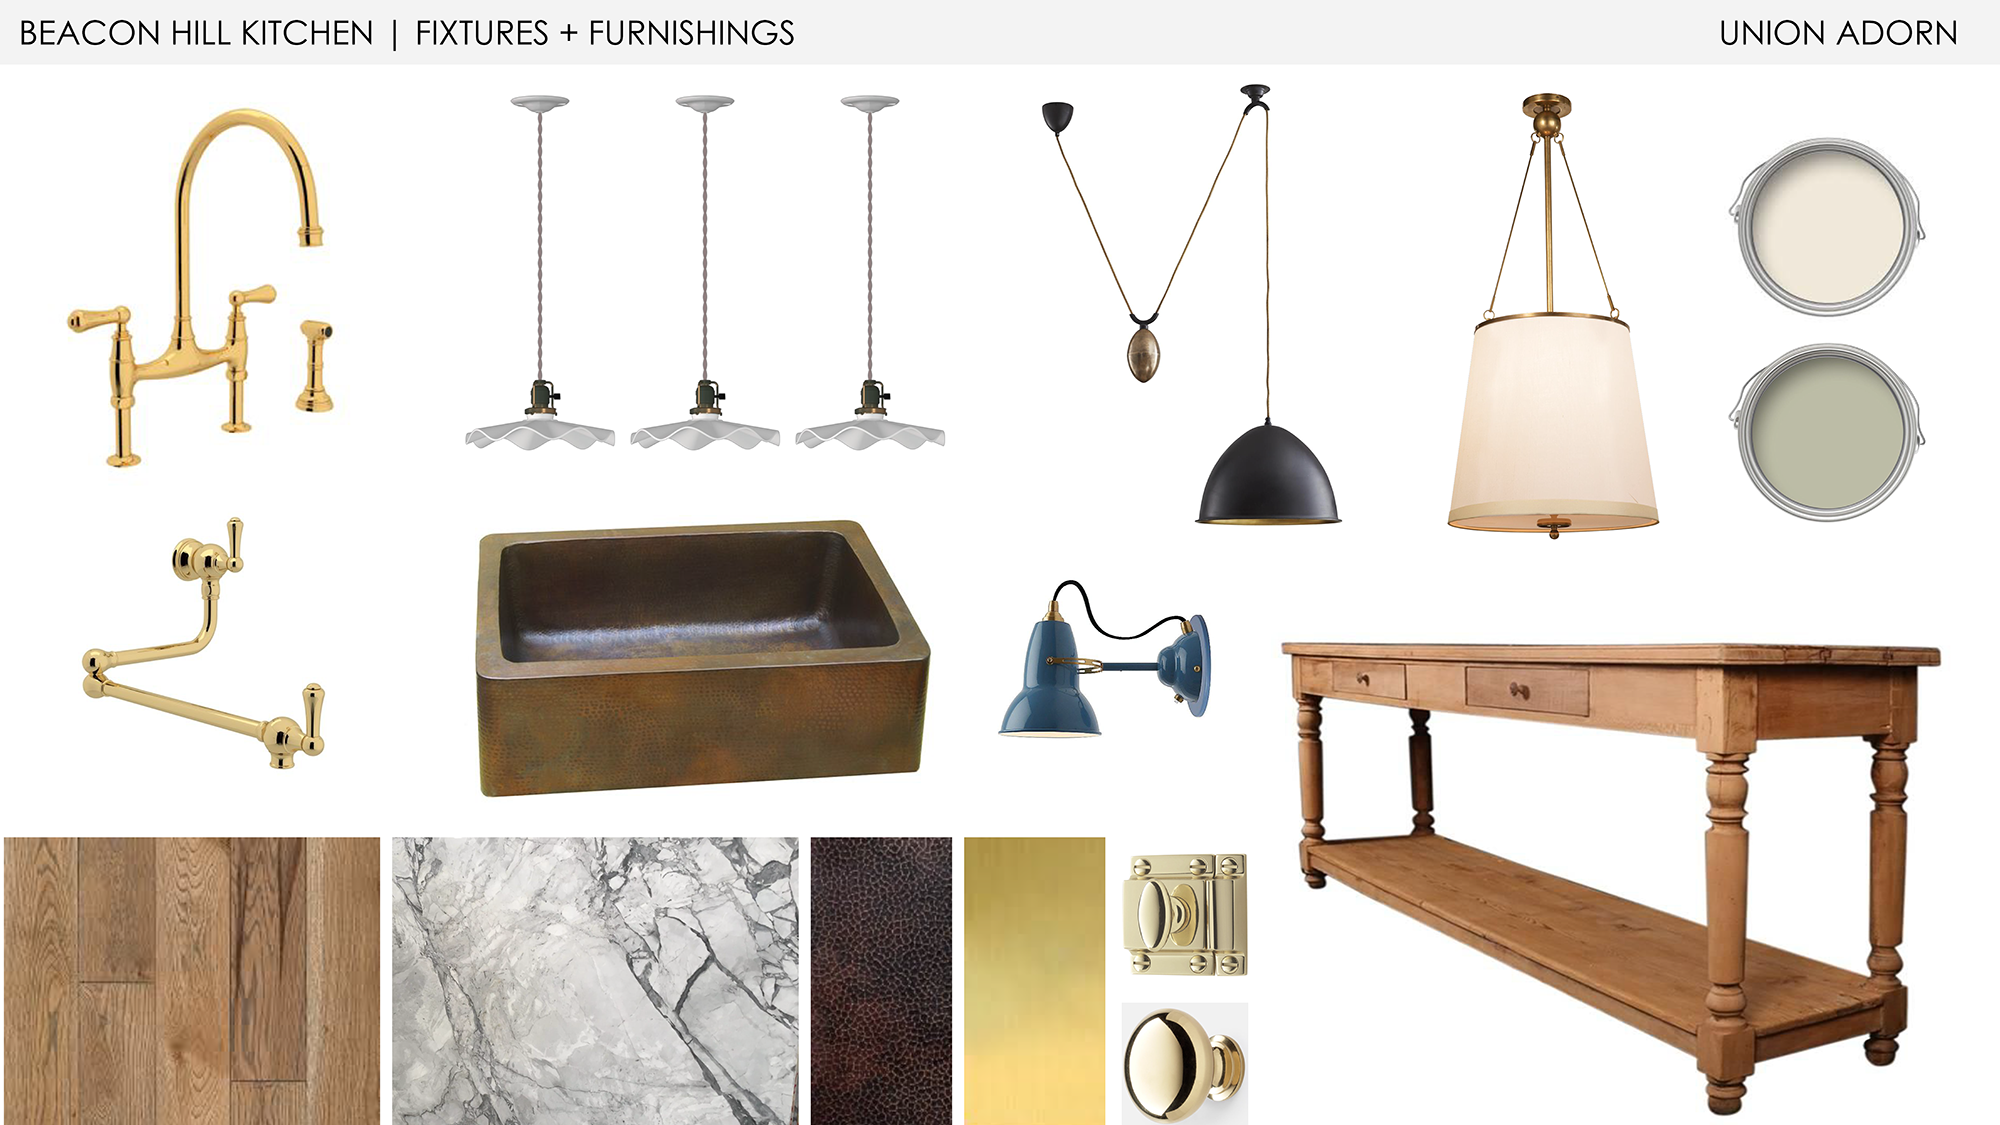 kitchen_Fixtures_Furnishings.png